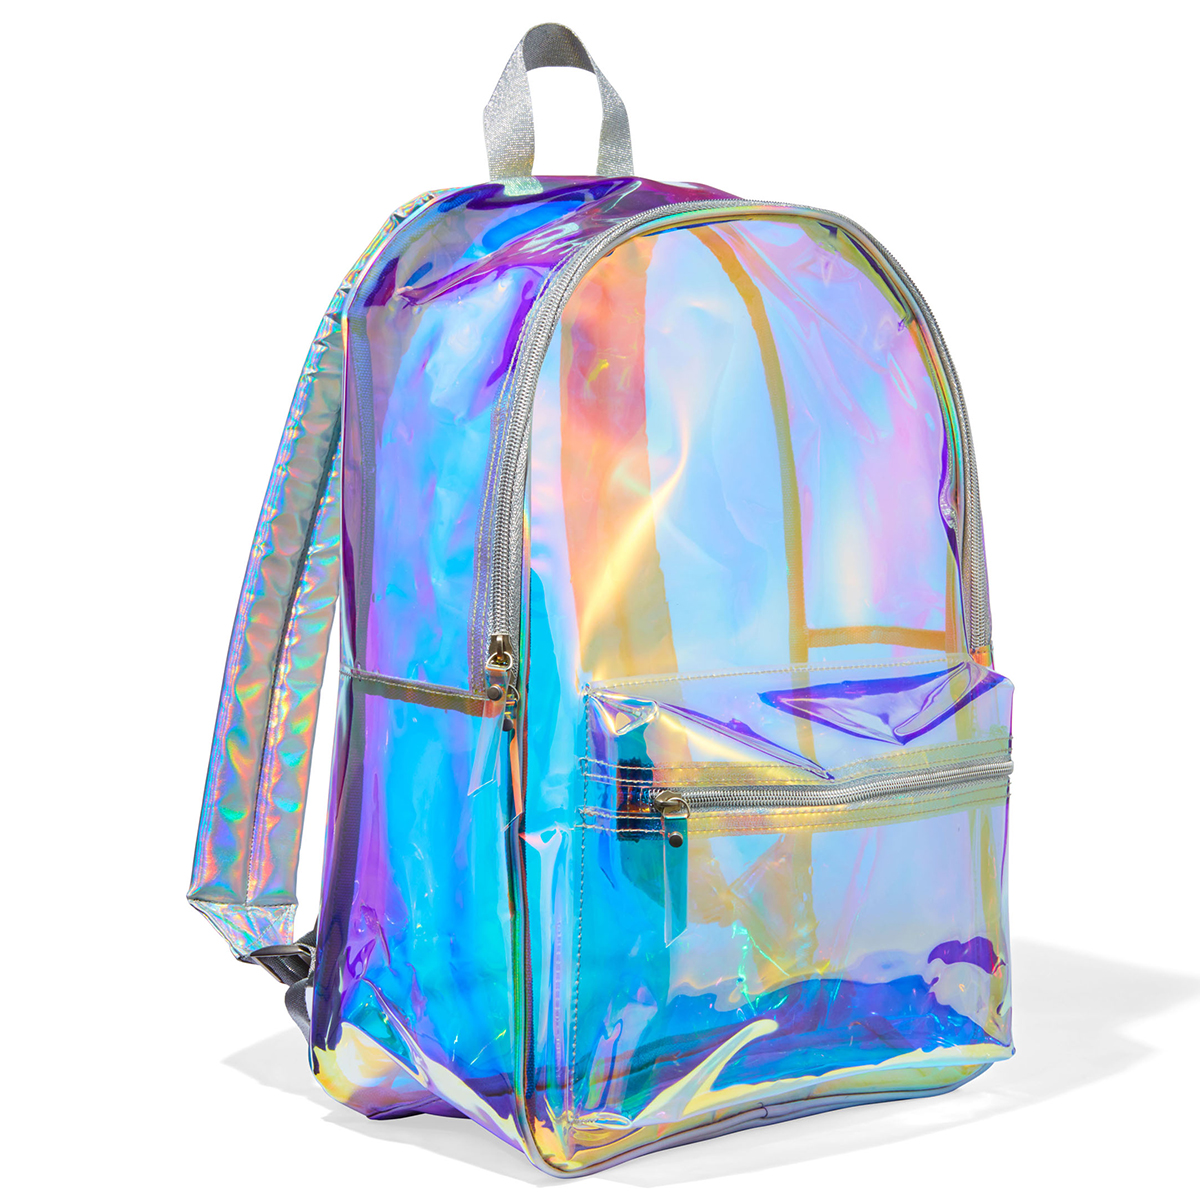 Pottery Barn Teen Clearly There Iridescent Backpack